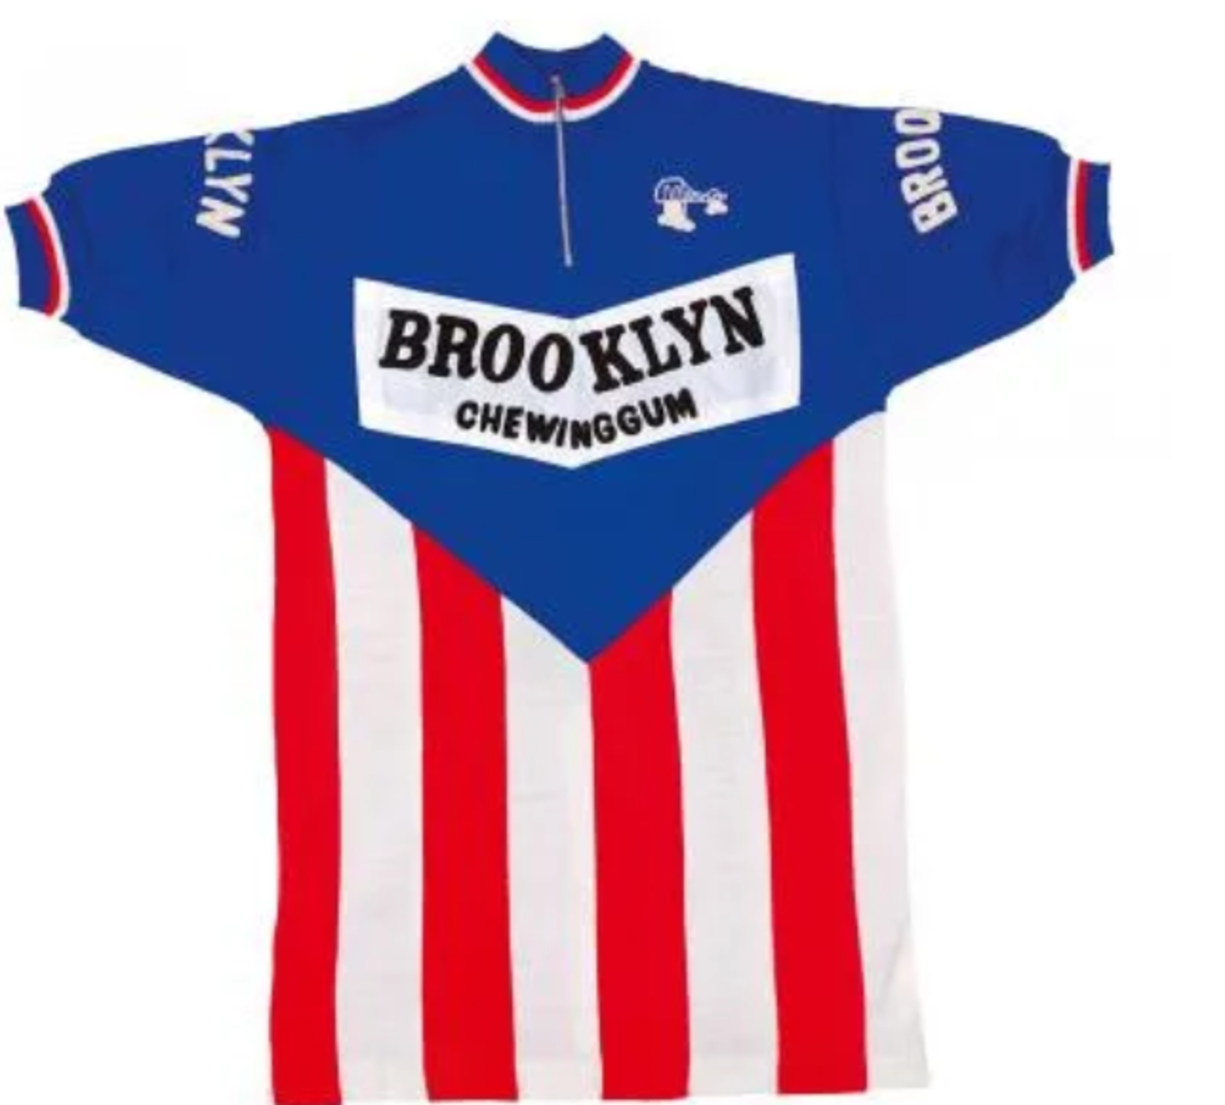 50) Brooklyn Chewing Gum (ciclismo)